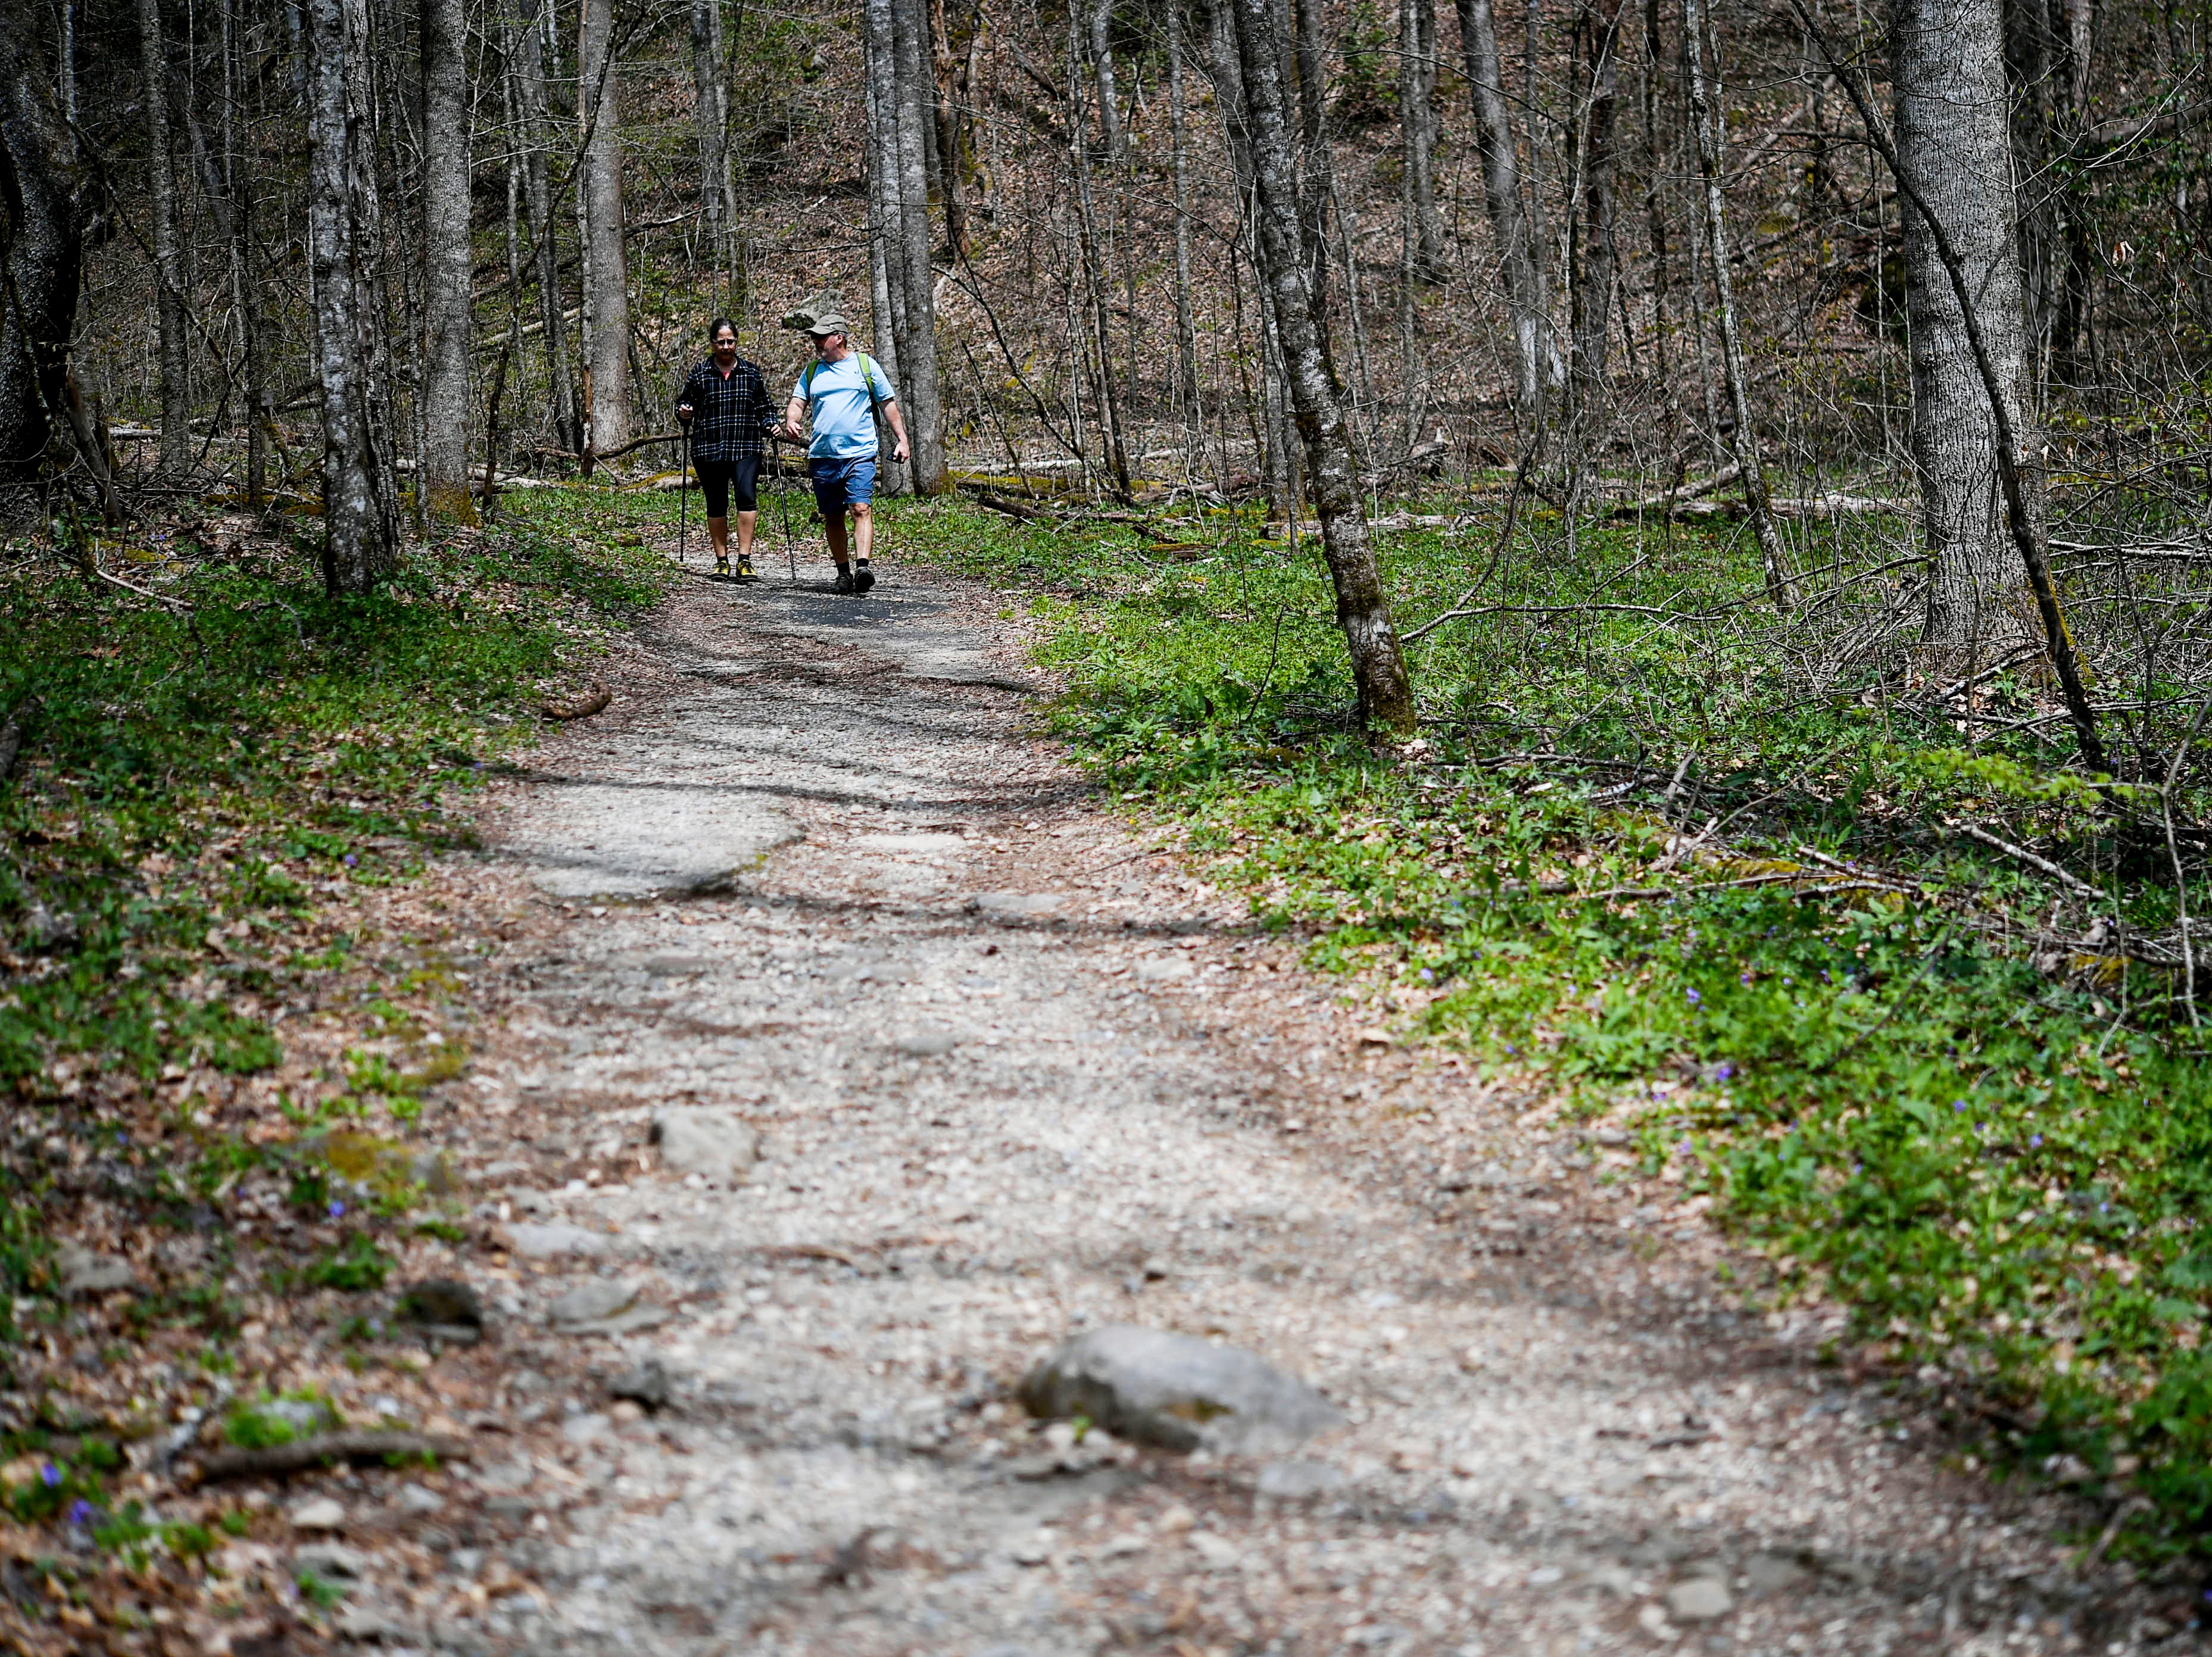 Hikers walk along the Kephart Prong Trail in Great Smoky Mountains National Park April 11, 2019.